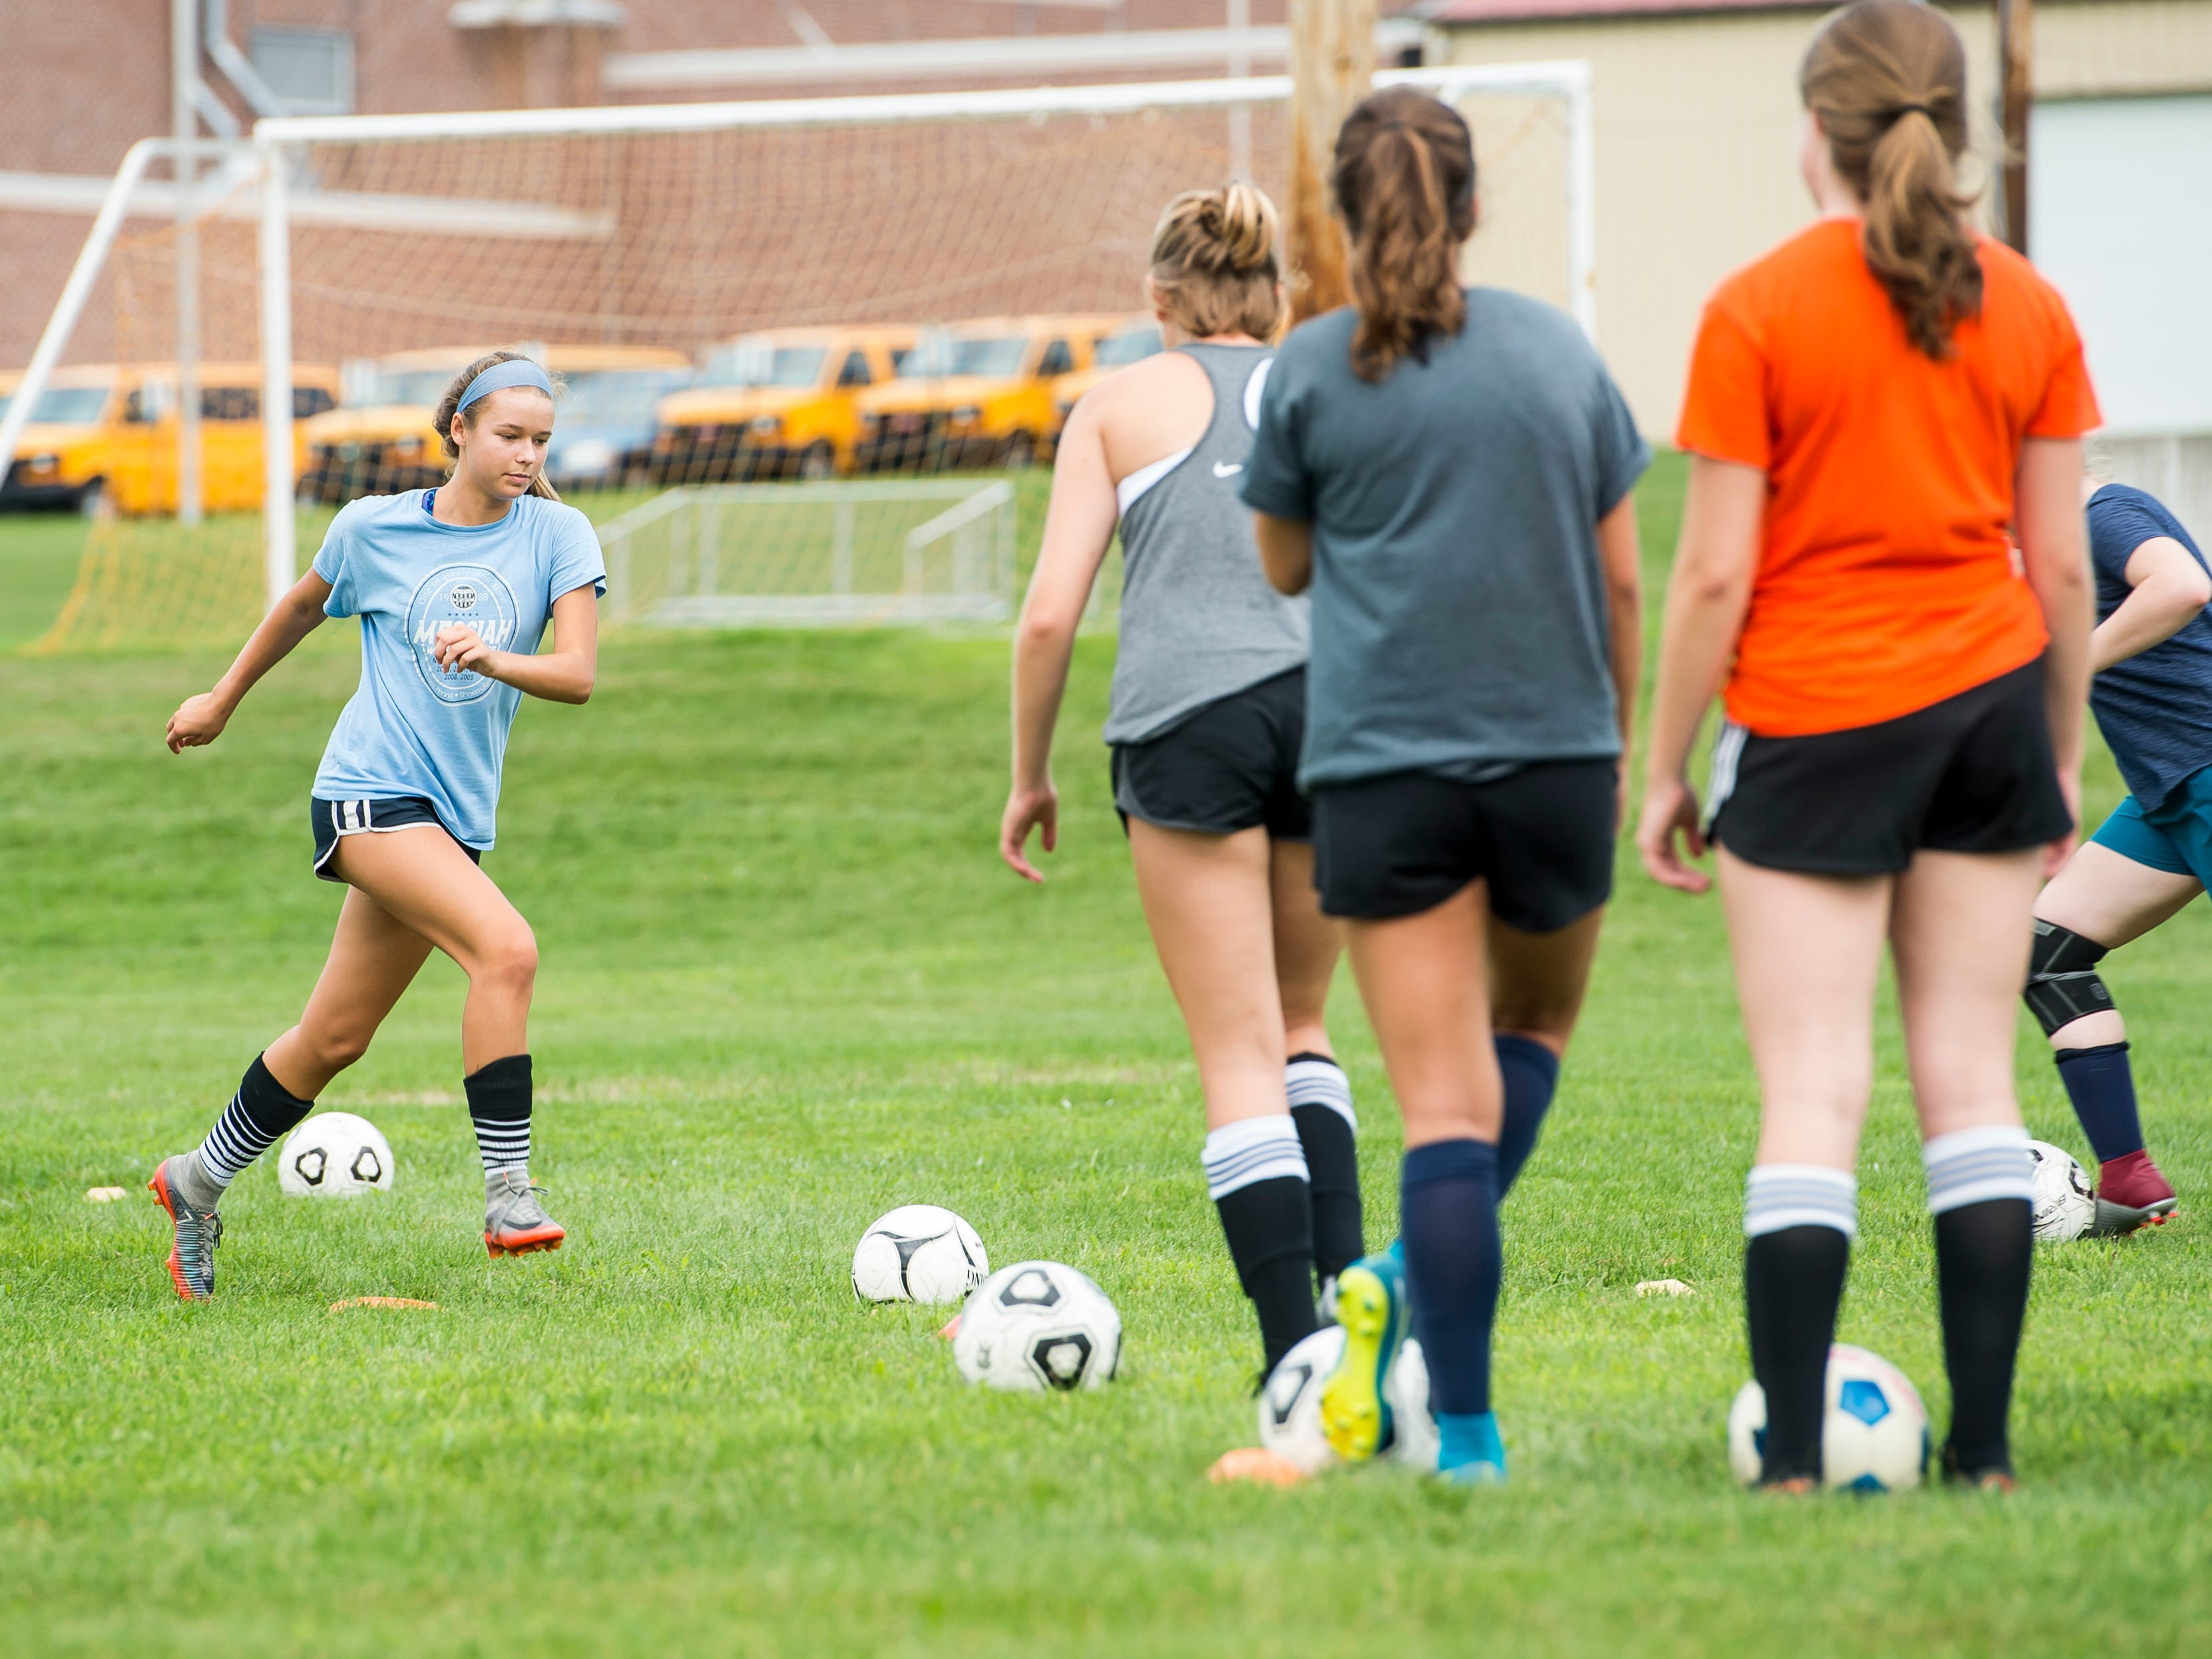 Gettysburg's Lora Bertram, left, prepares to kick a soccer ball during the first day of fall sports practice on Monday, August 13, 2018.